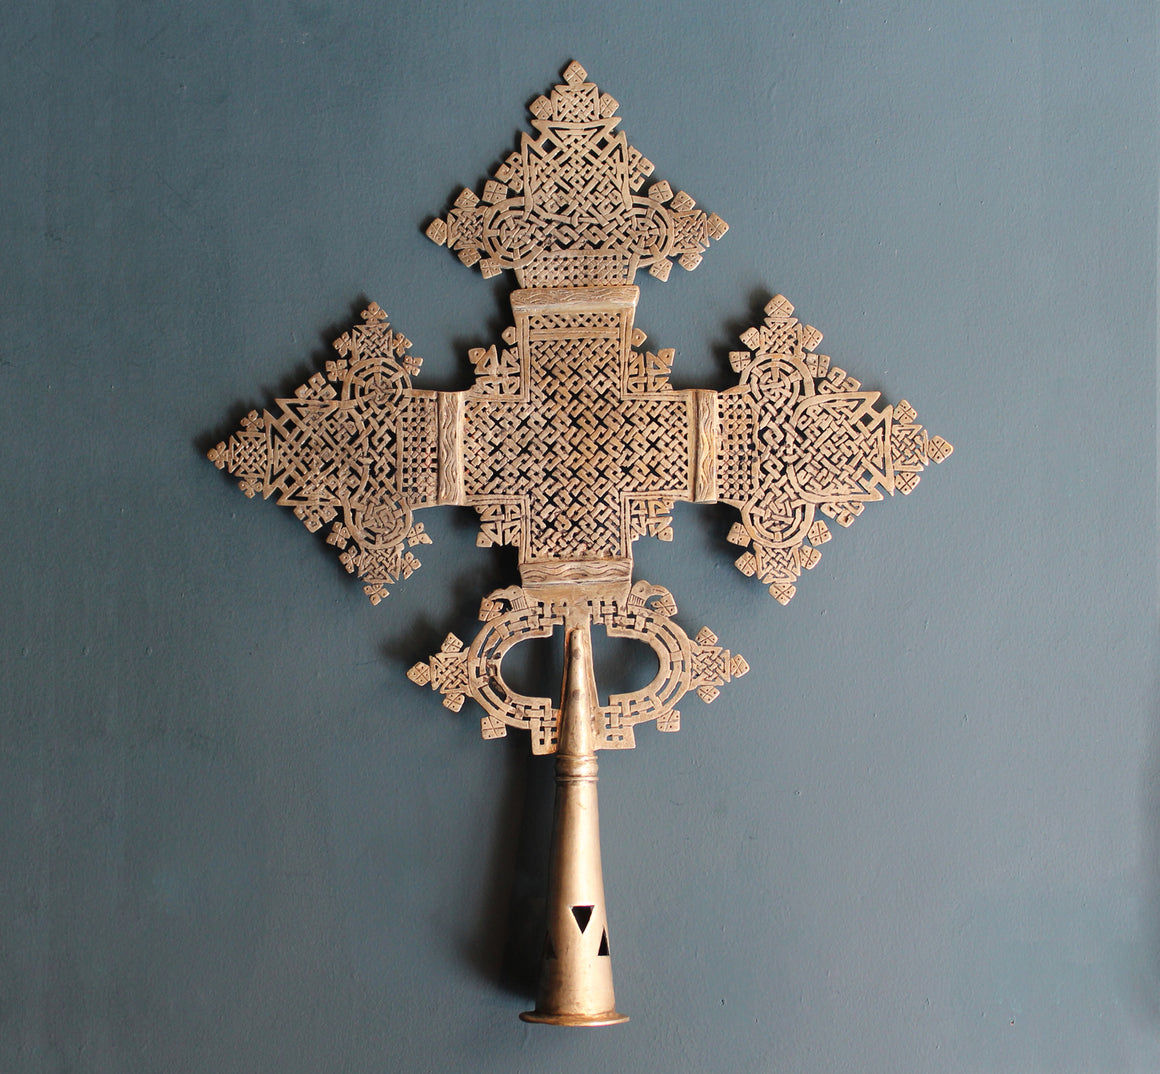 Decorative Processional Cross from Ethiopia - Large